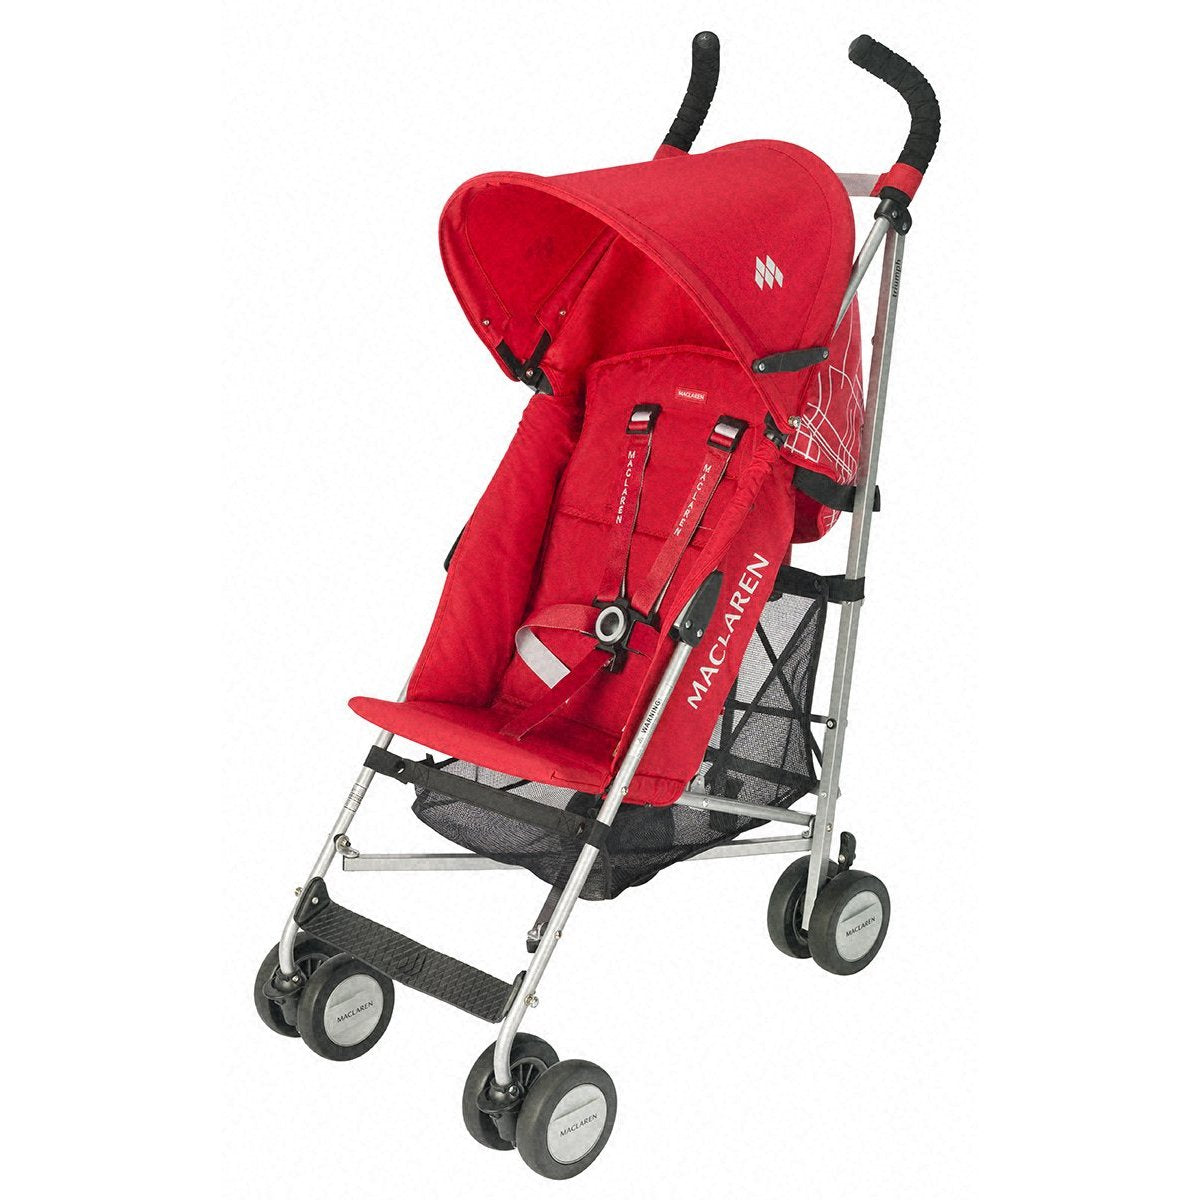 Stroller, Baby Stroller - To Buy Online Or Not